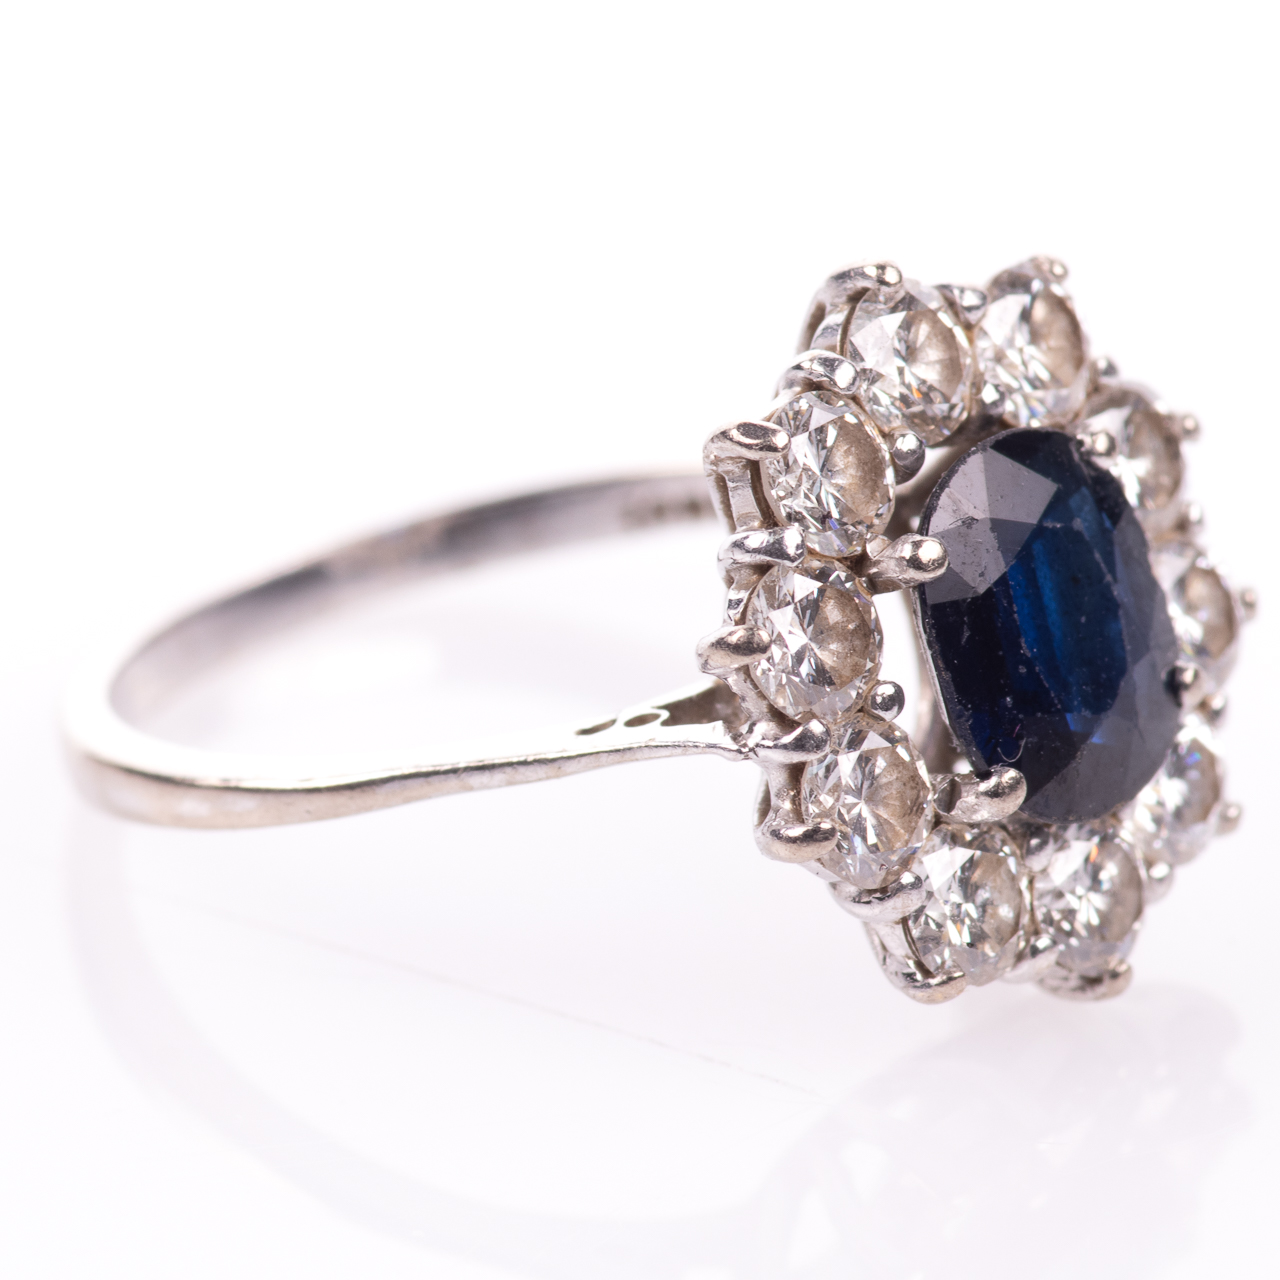 18ct White Gold 1ct Sapphire & 1ct Diamond Cluster Ring - Image 6 of 7